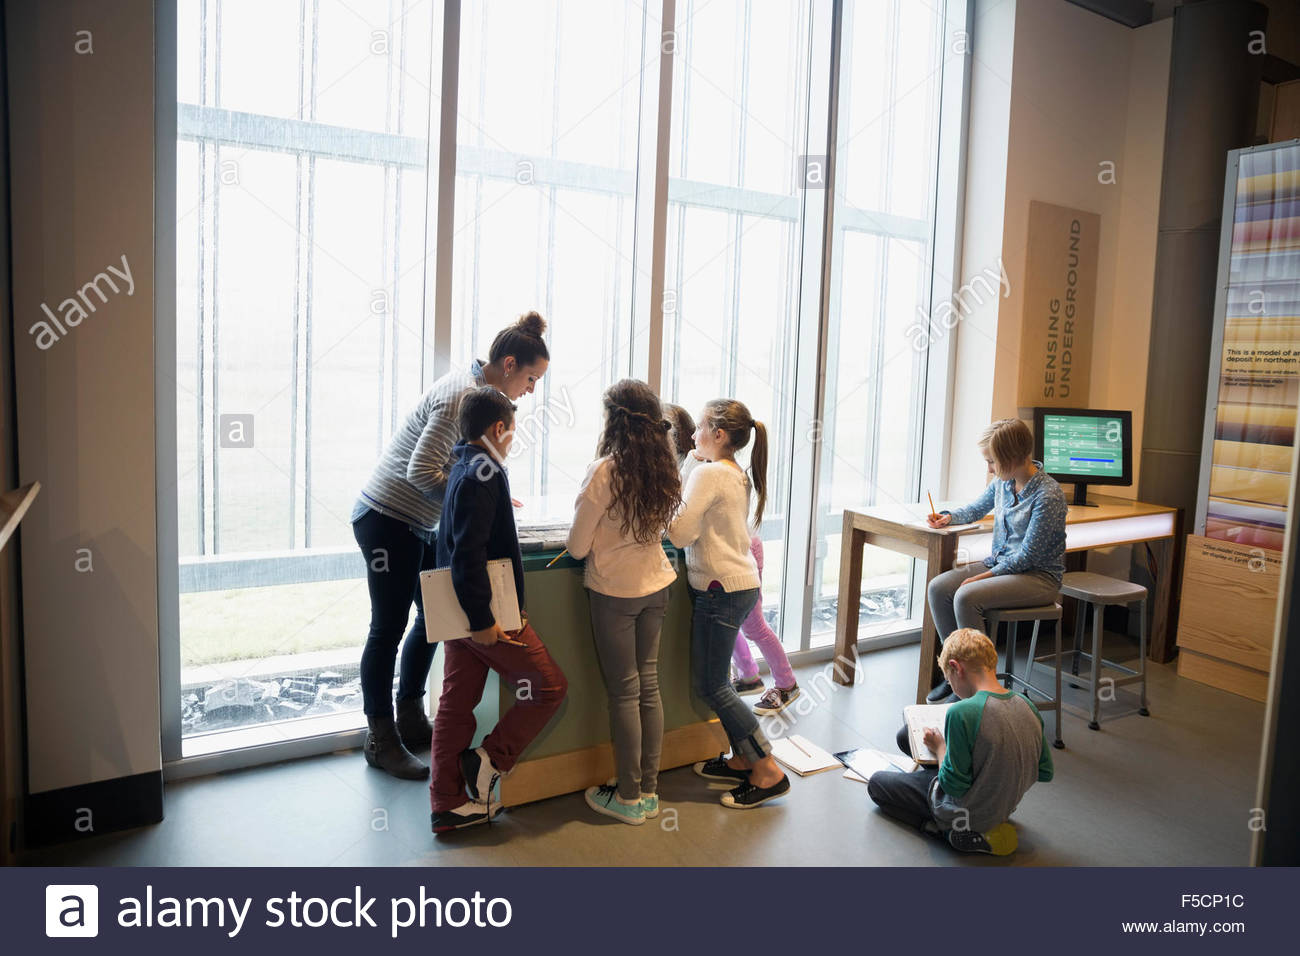 Teacher and students at exhibit in science center - Stock Image